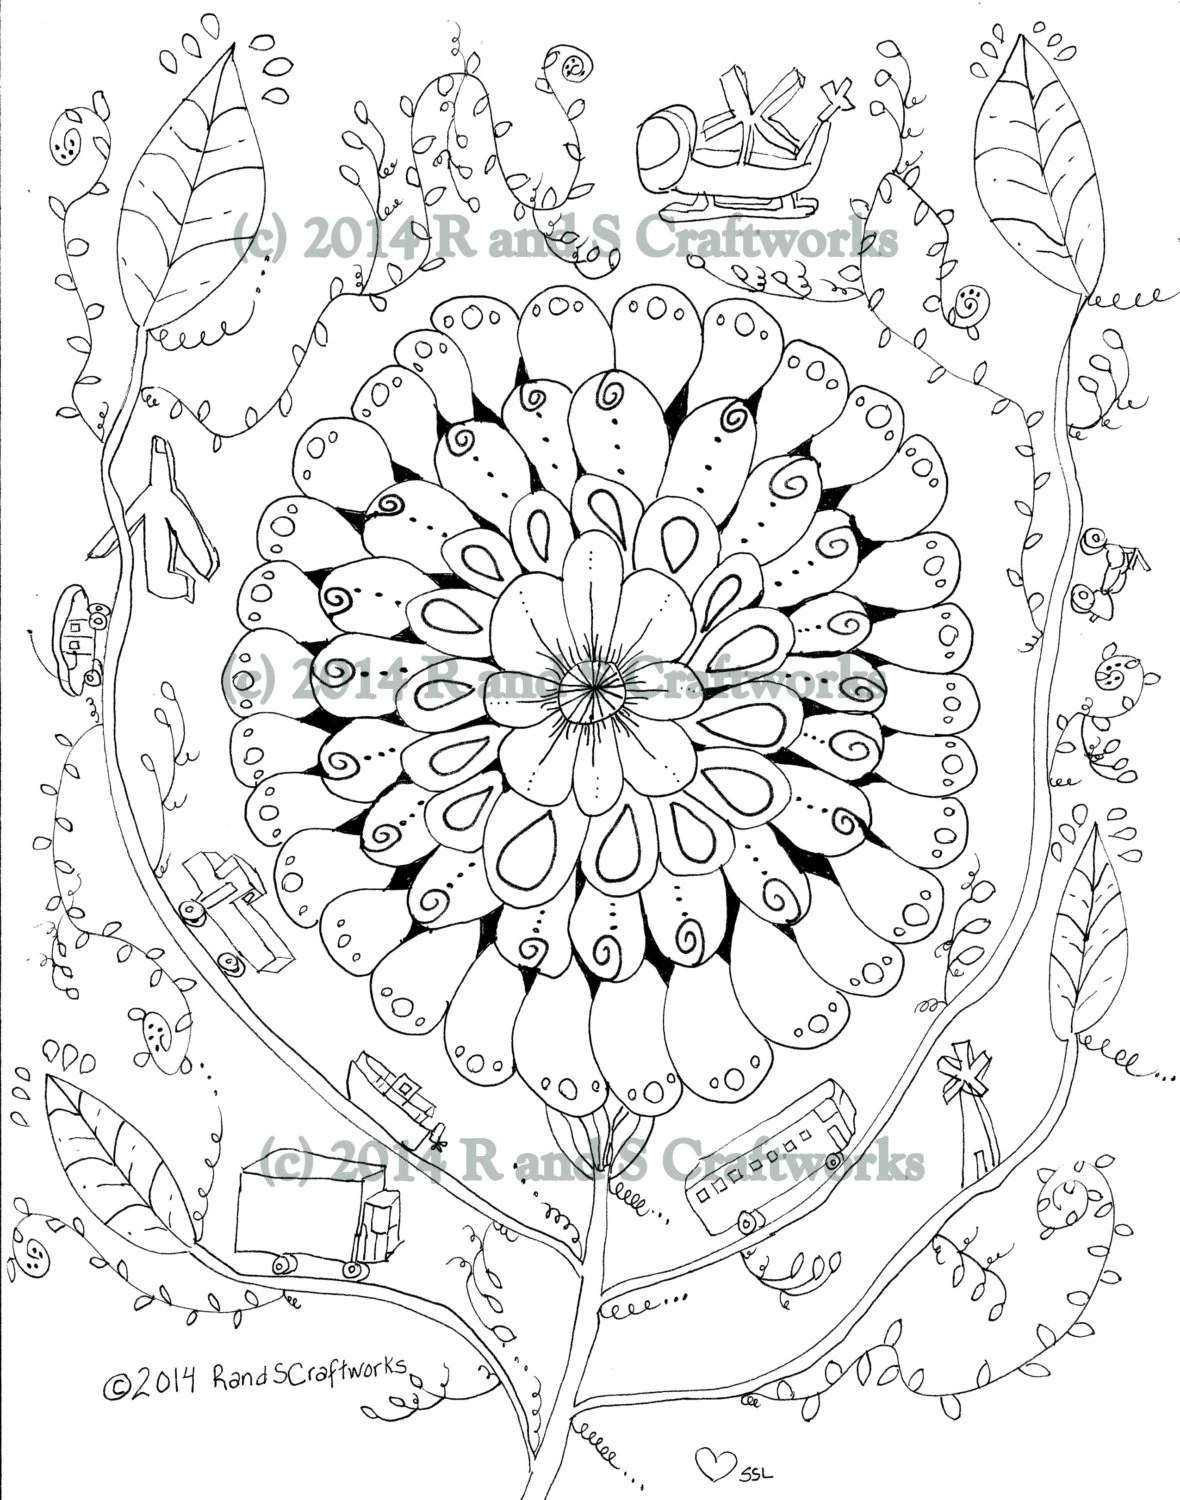 Coloring page: Flower Power